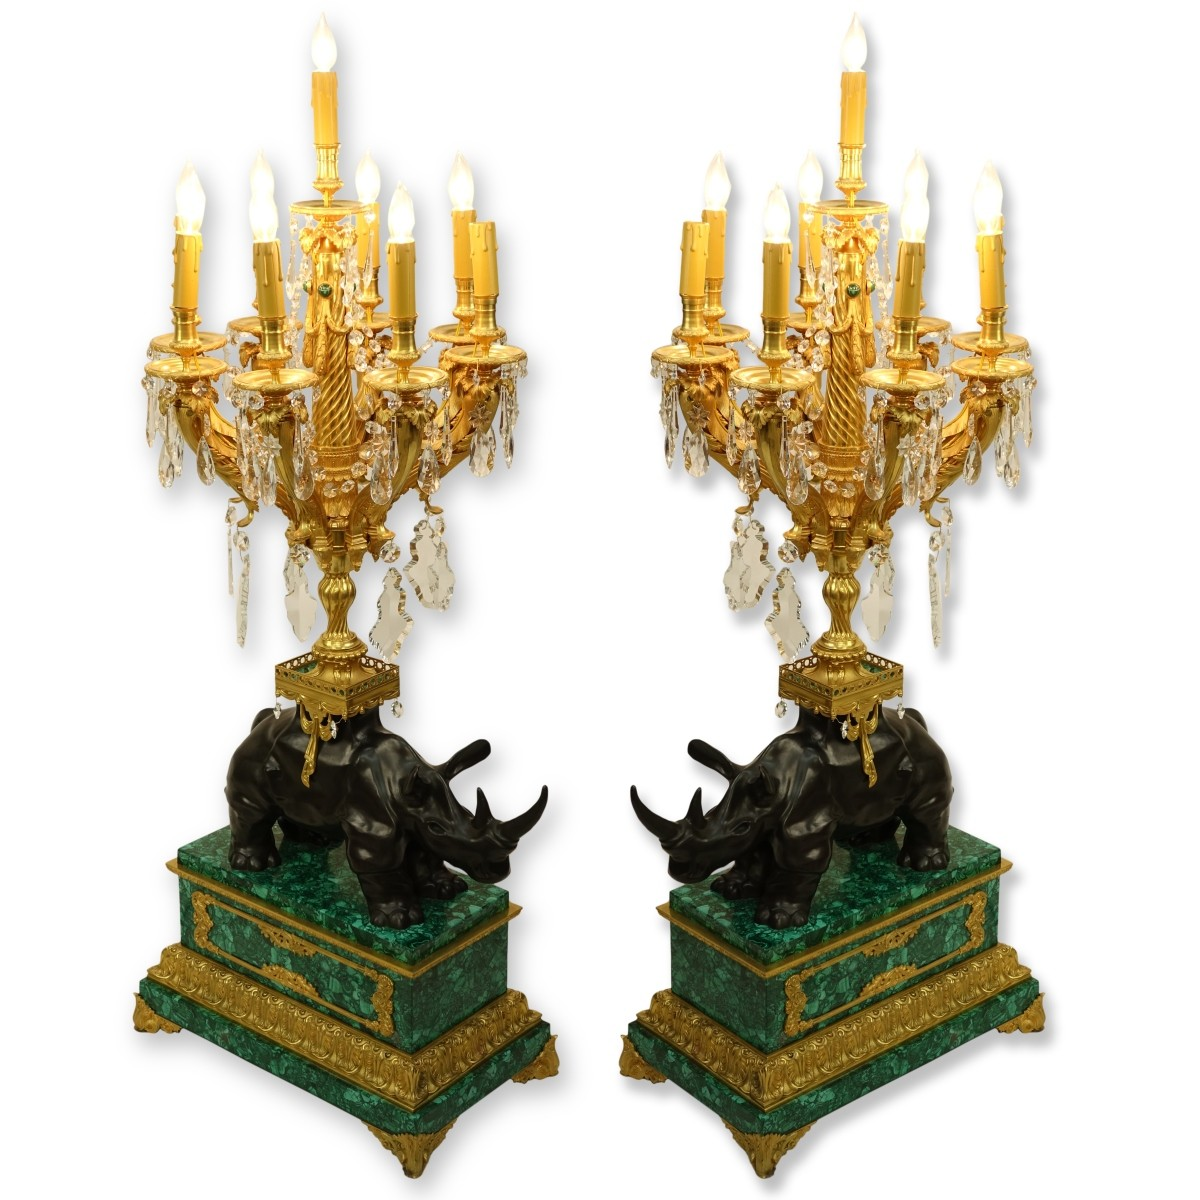 Magnificent Pair of Candelabra